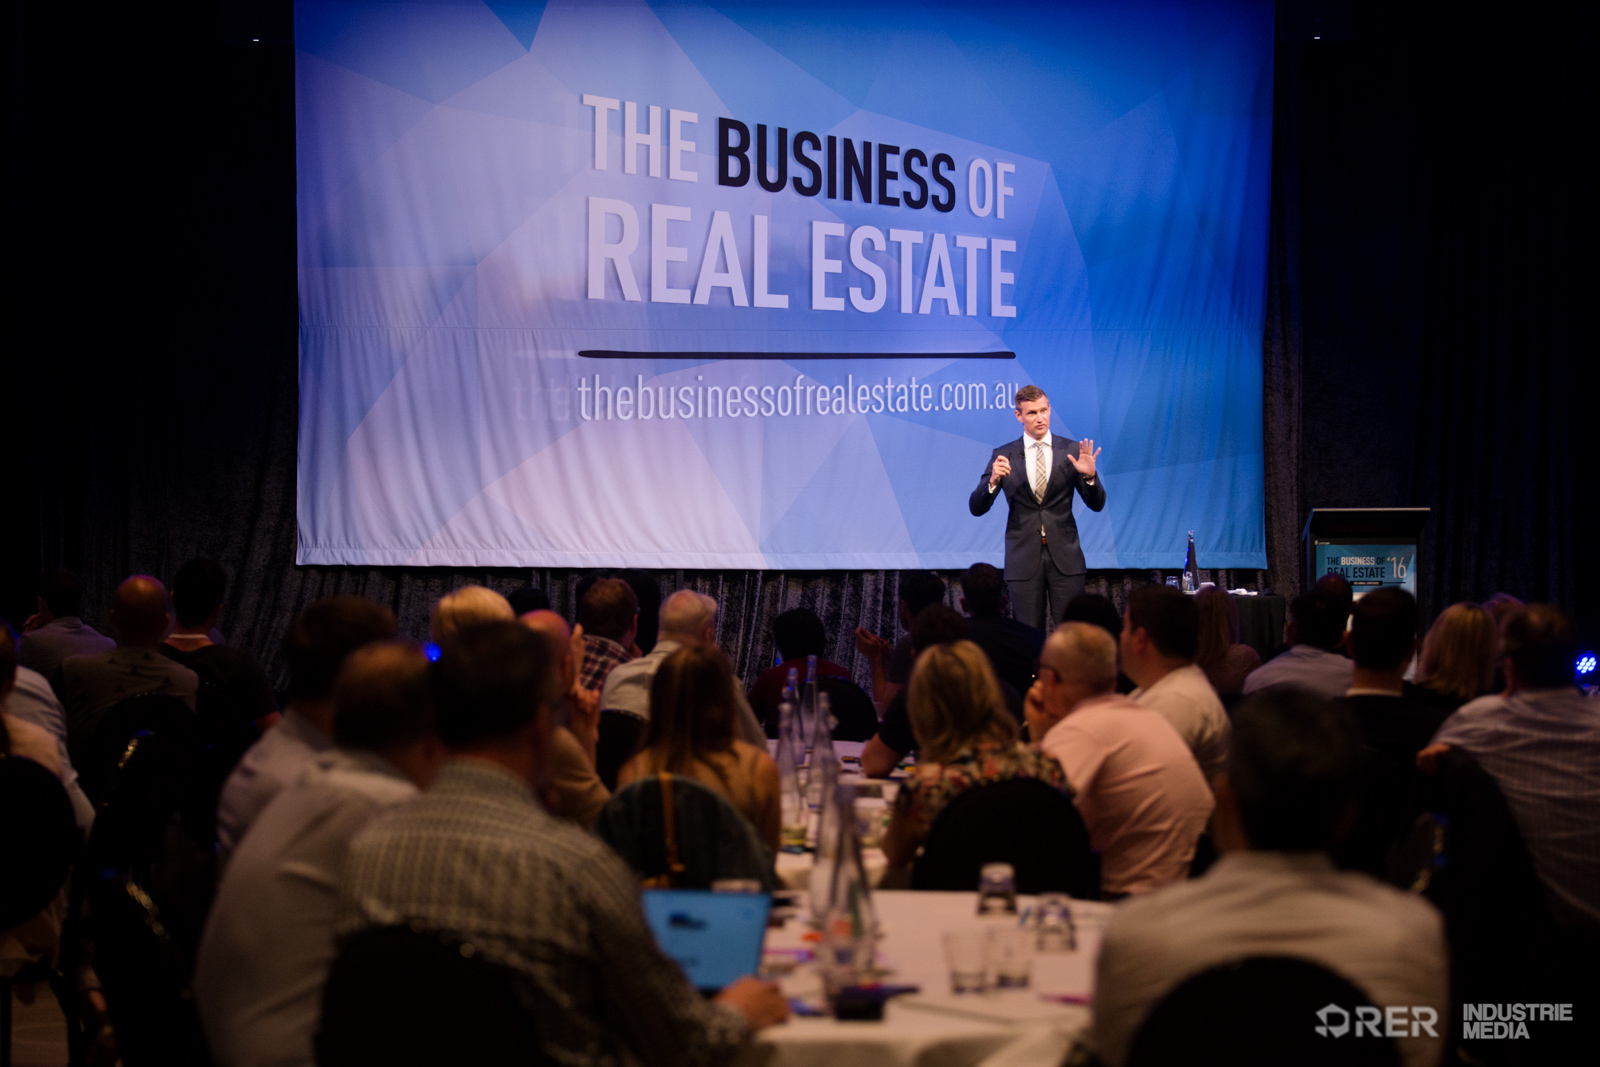 http://www.thebusinessofrealestate.com.au/wp-content/uploads/2016/09/RER_BUSINESS_OF_REAL_ESTATE-41.jpg